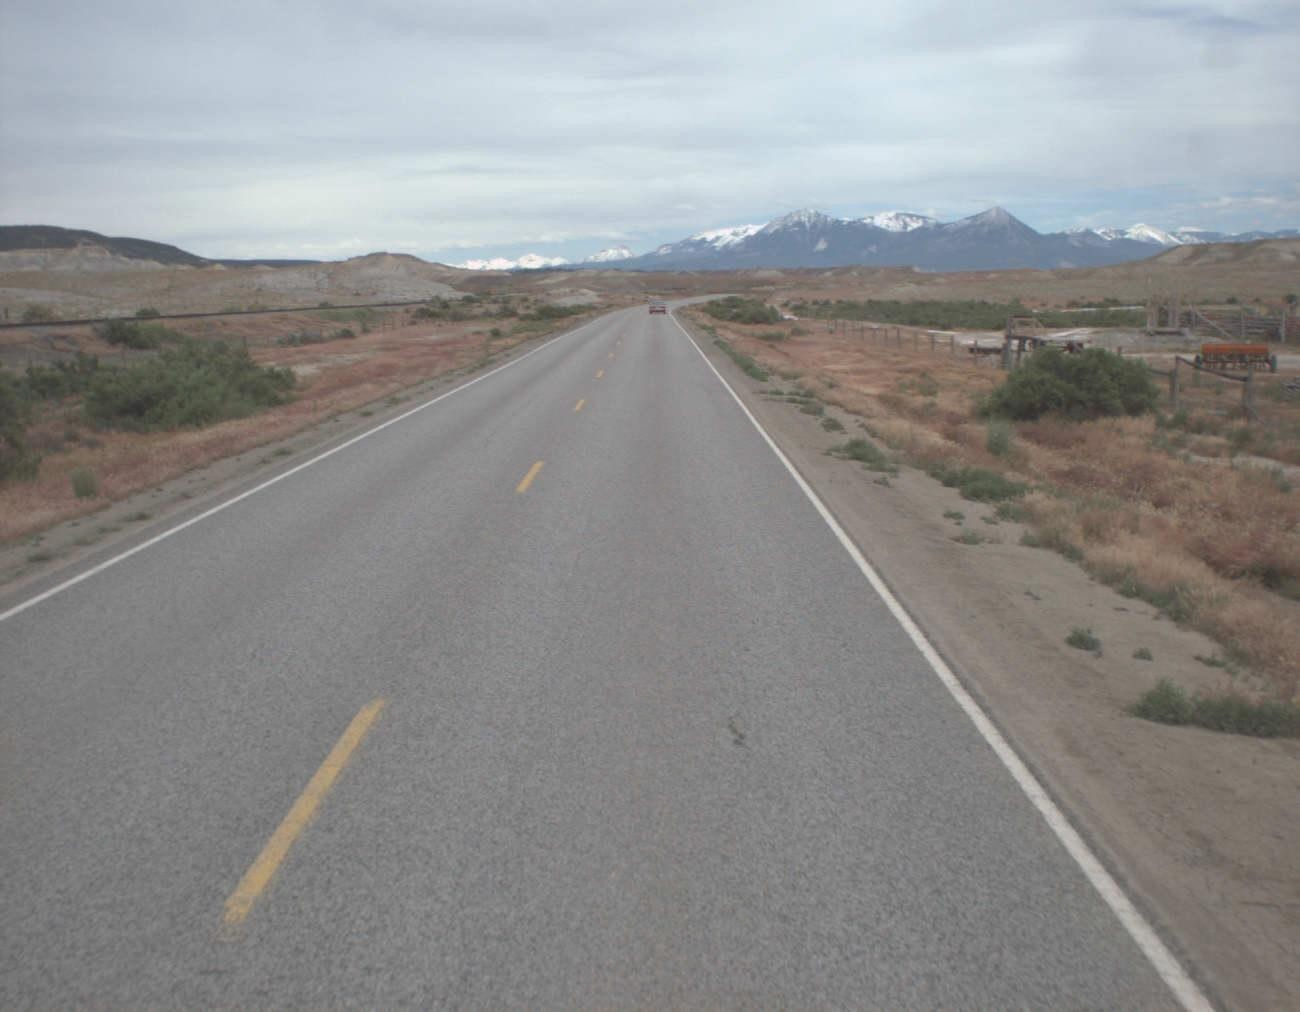 State Highway 92 between Austin and Hotchkiss detail image